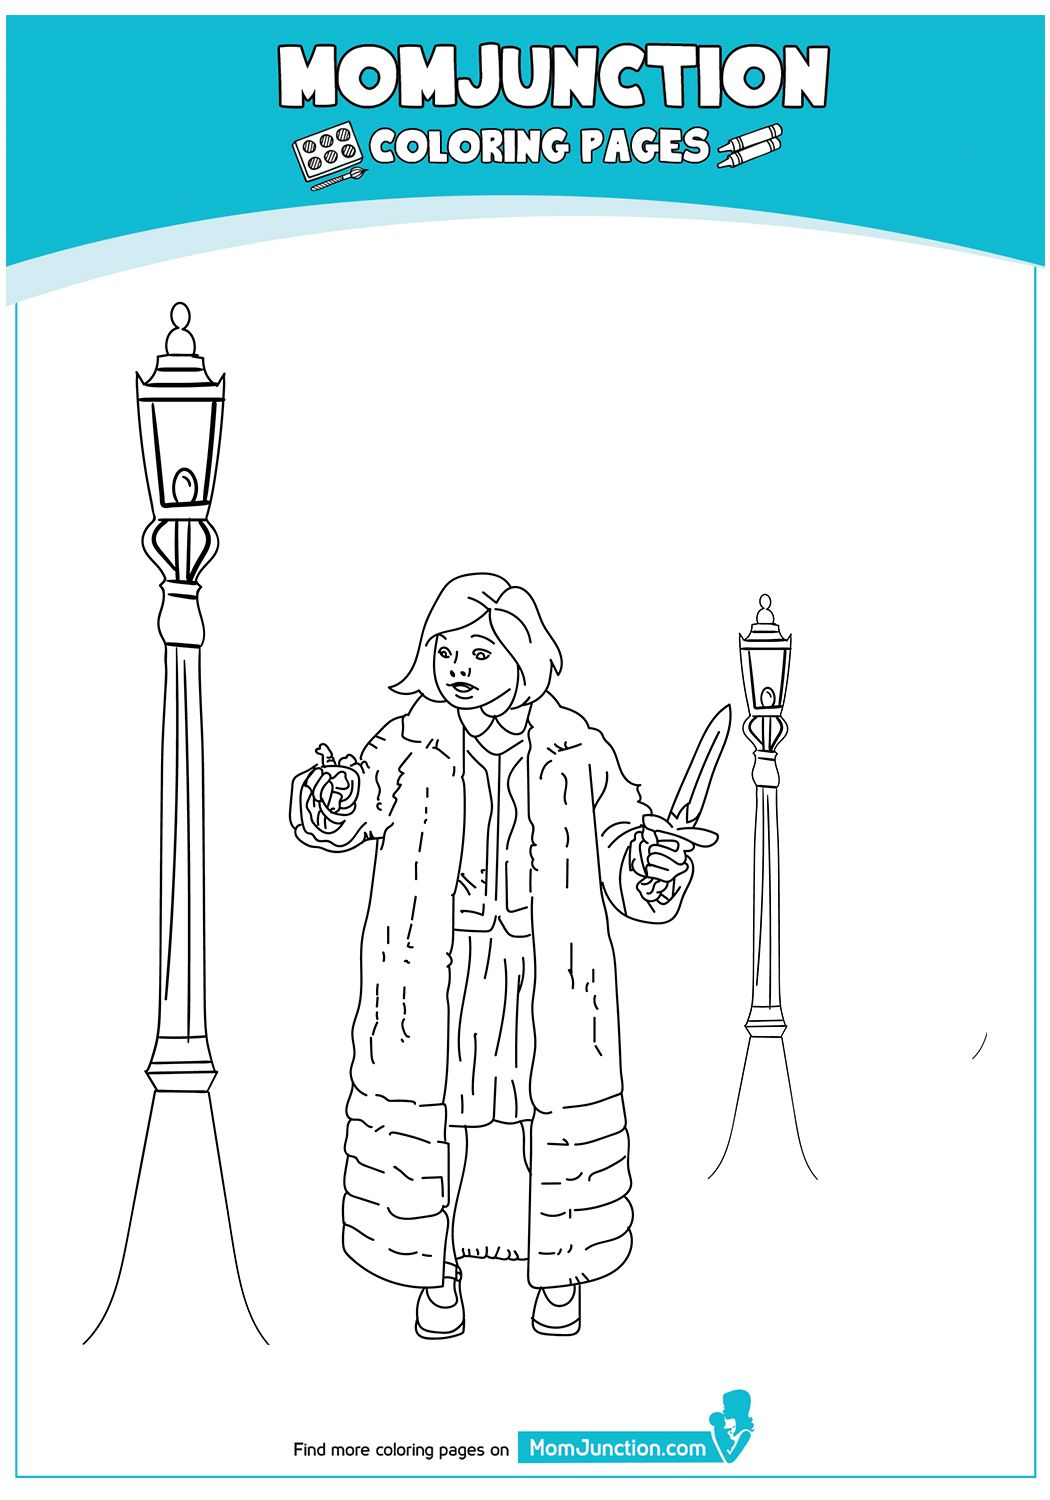 Lucy Pevensie 17 Mom Junction Coloring Pages Personal Health